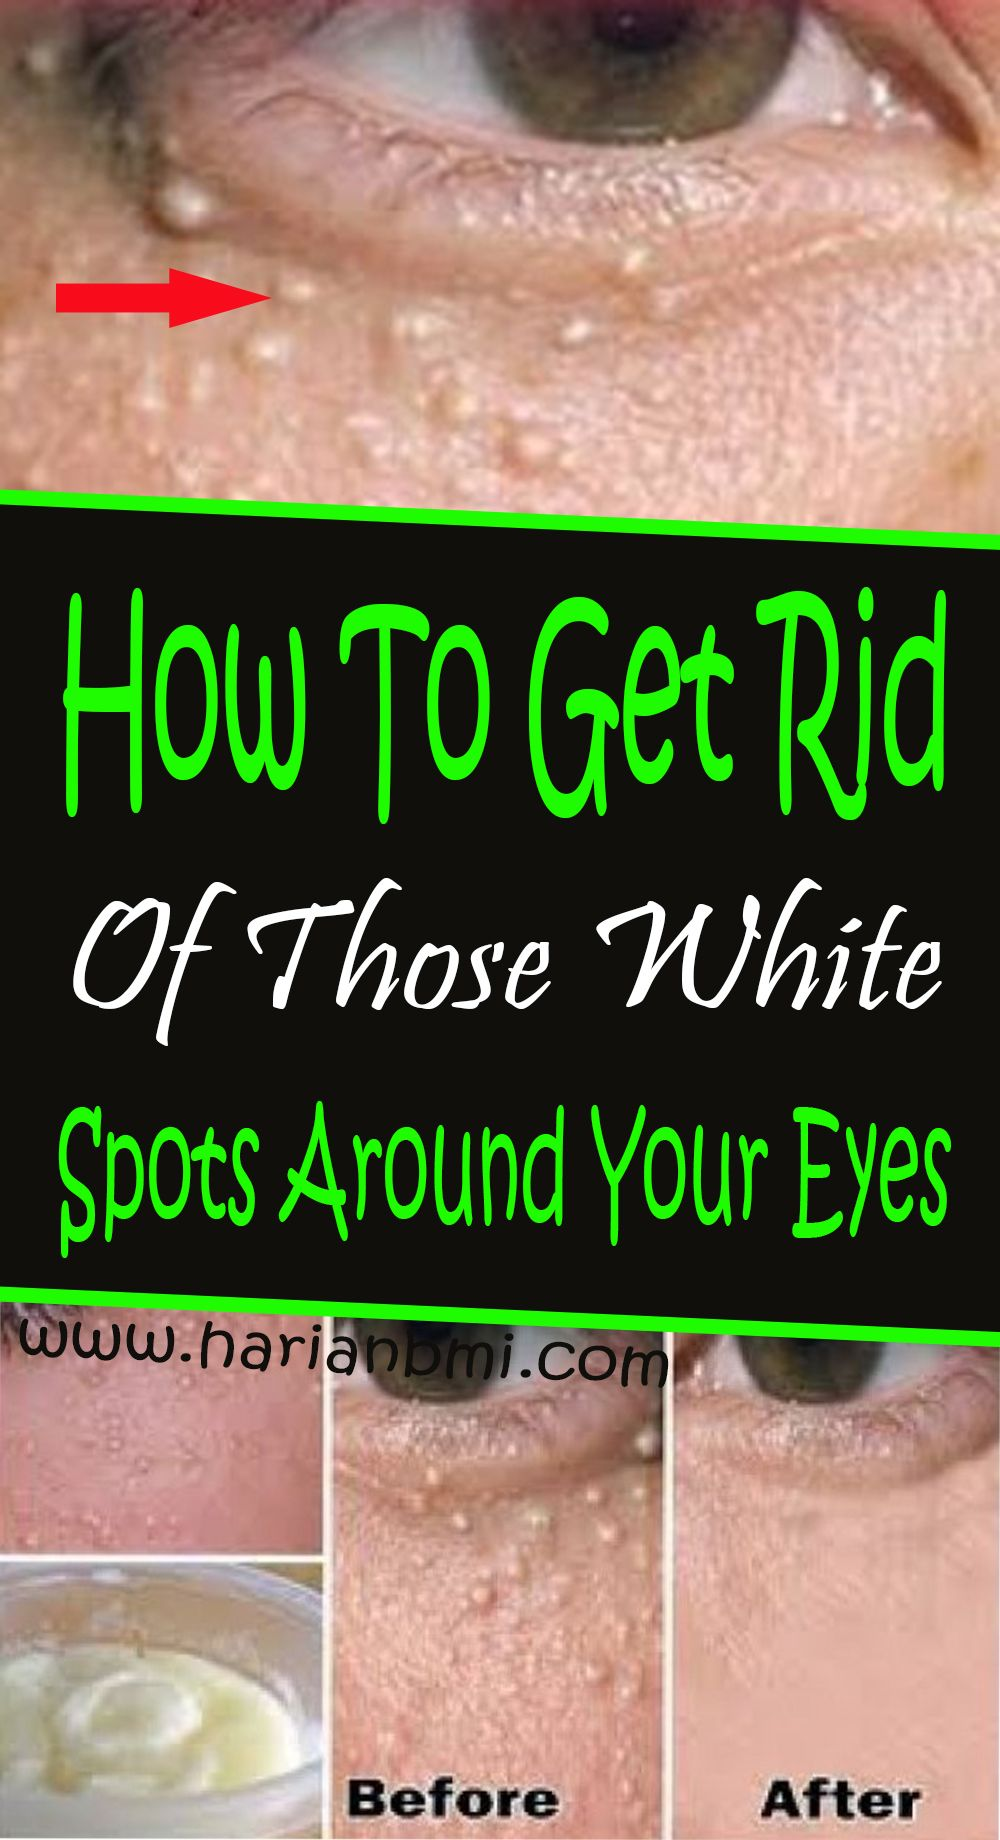 How to get rid of those white spots around your eyes